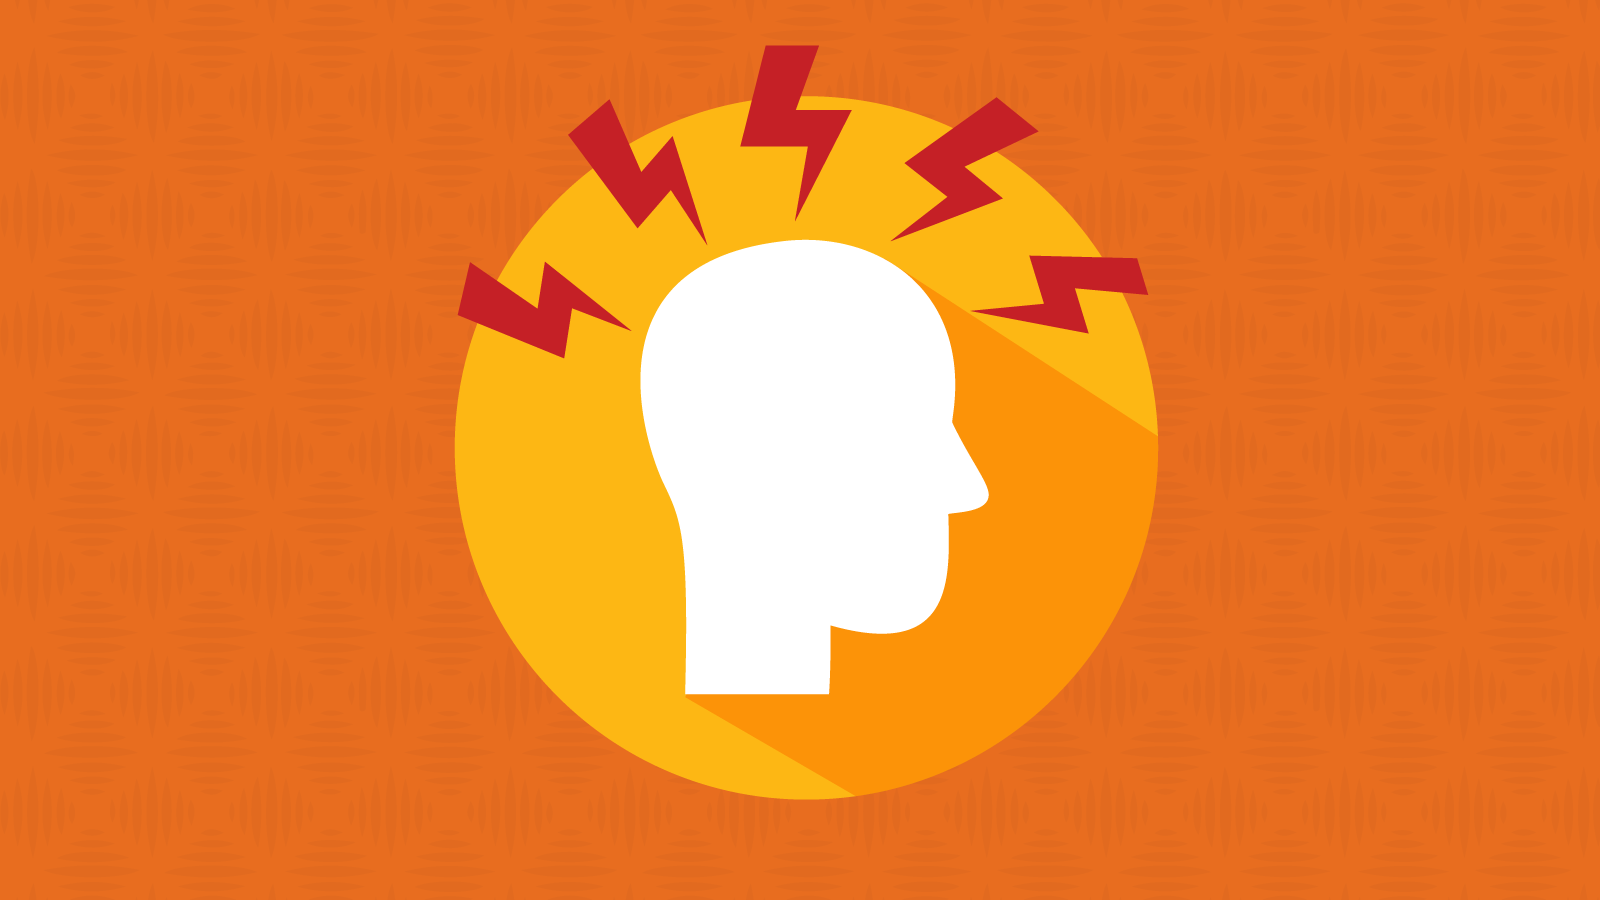 silhouette of a stressed marketer's head